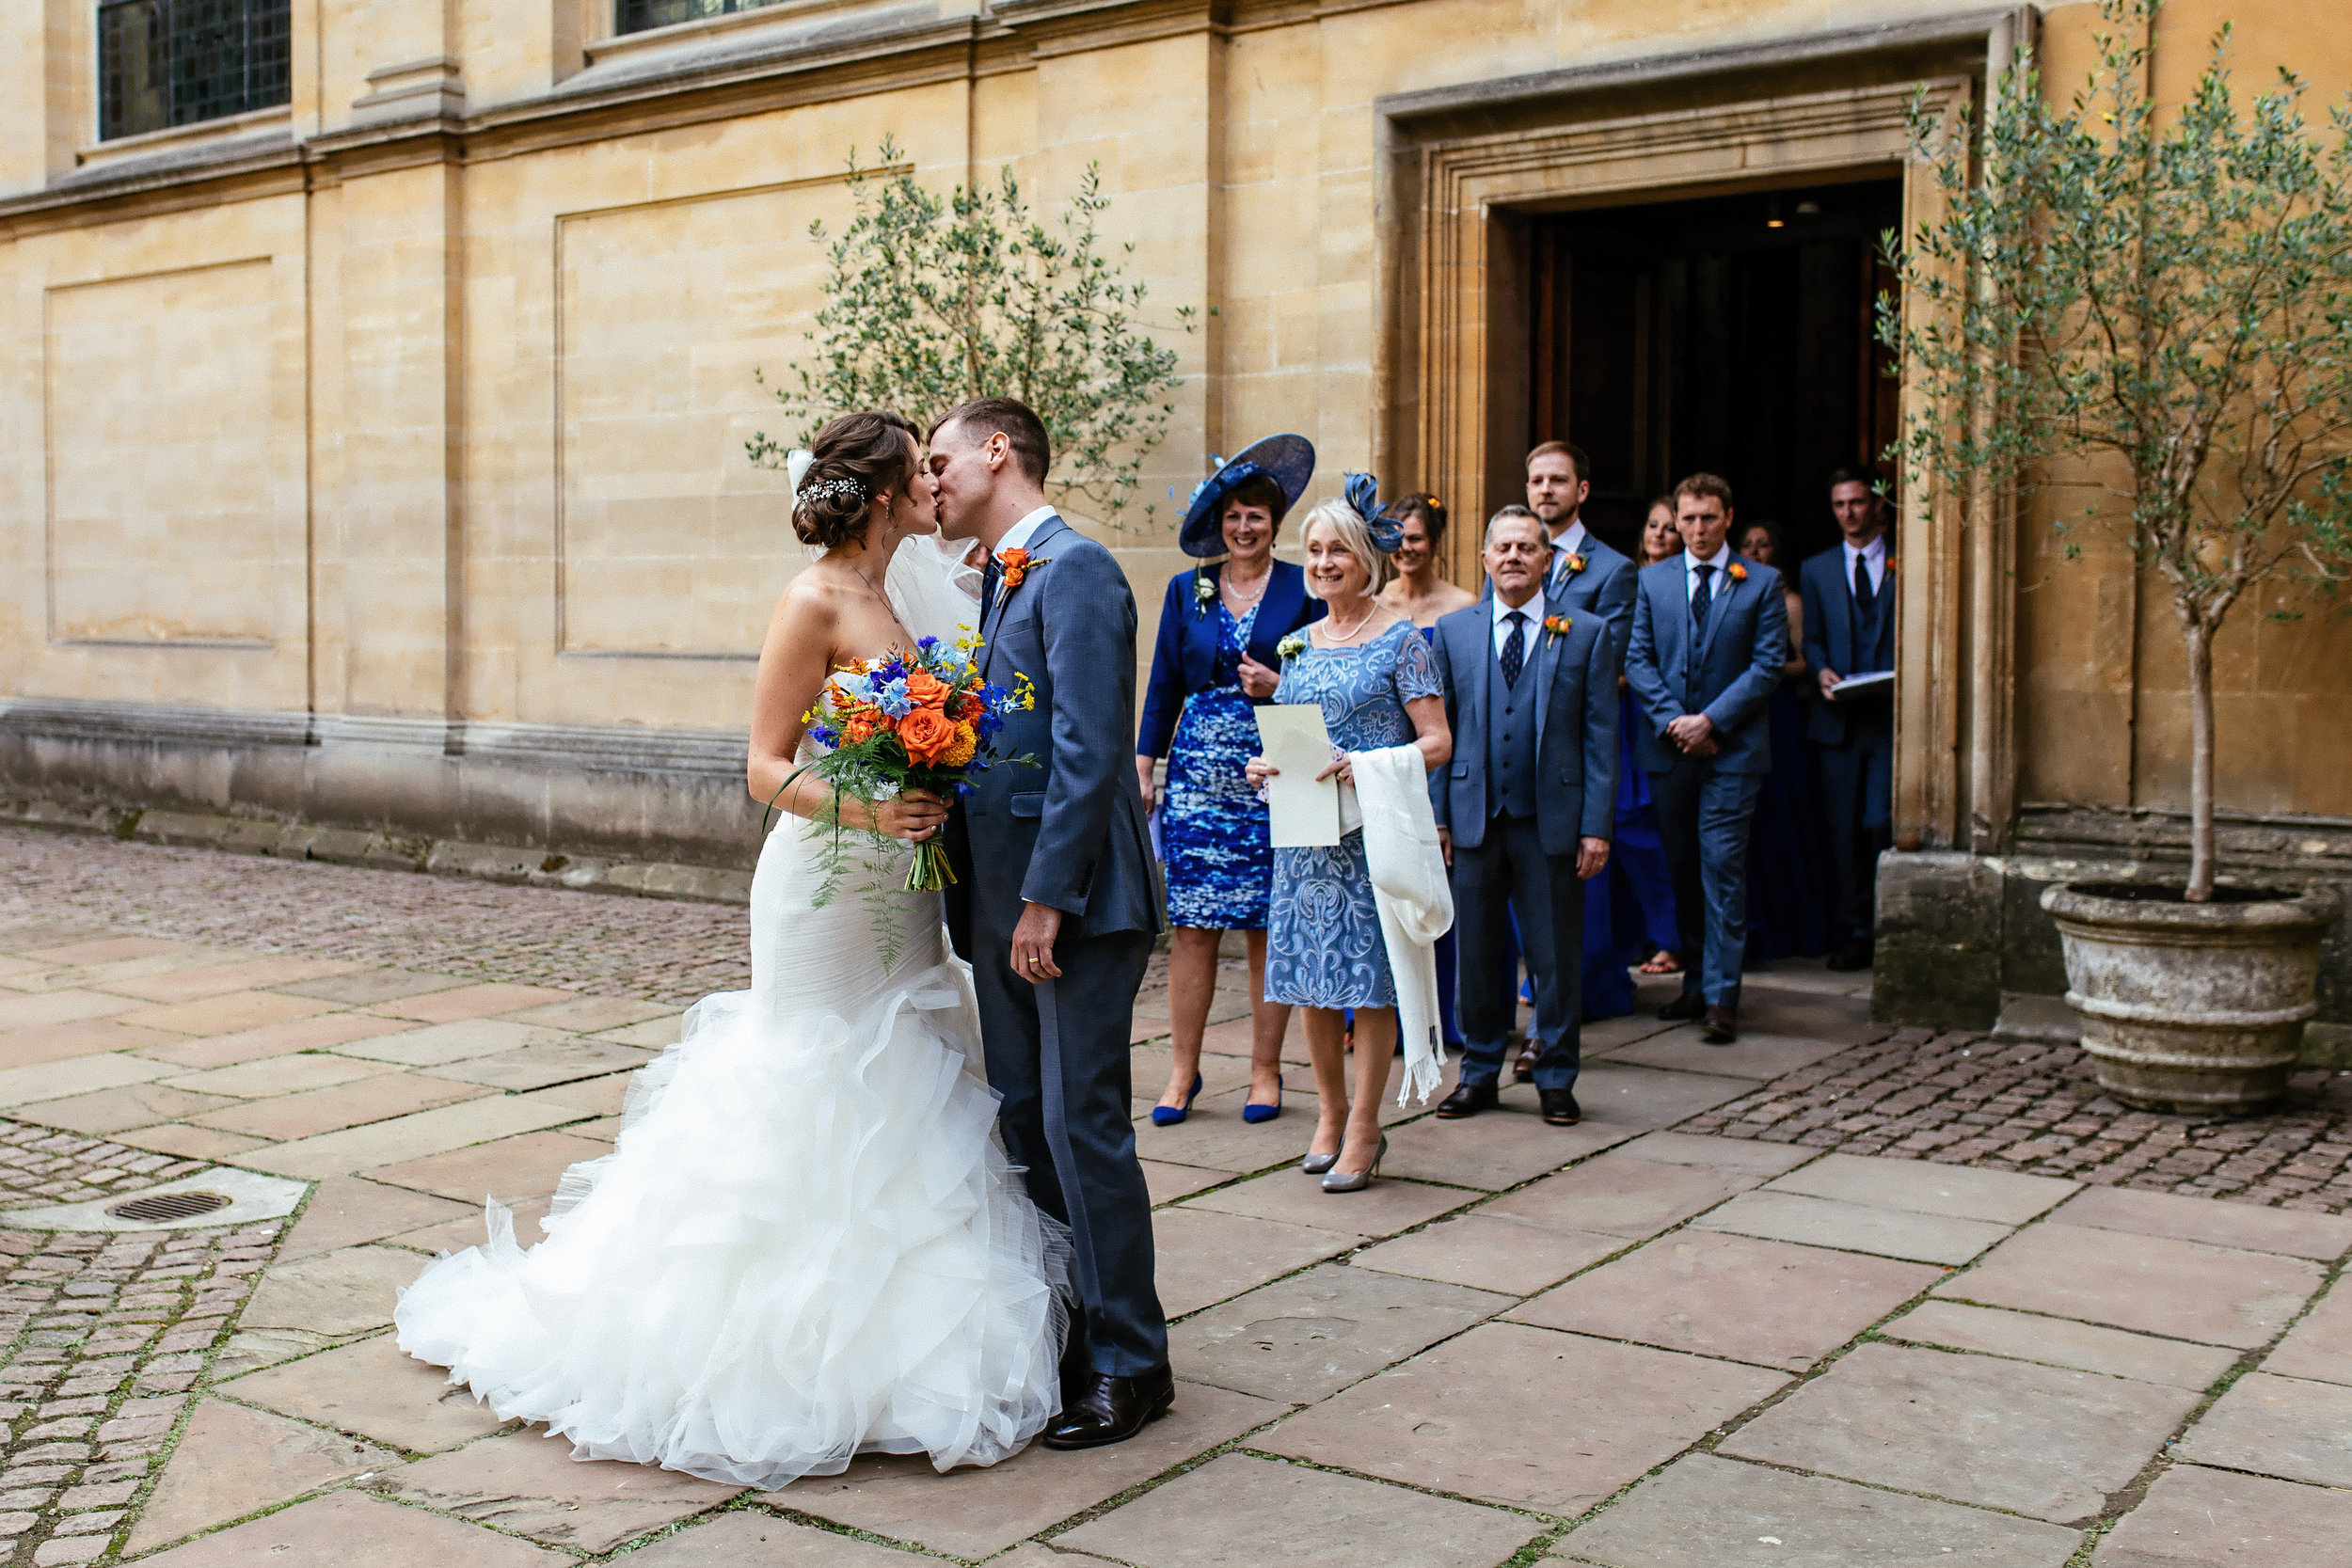 Kate-and-Tom-Wedding-Highlights-43.jpg